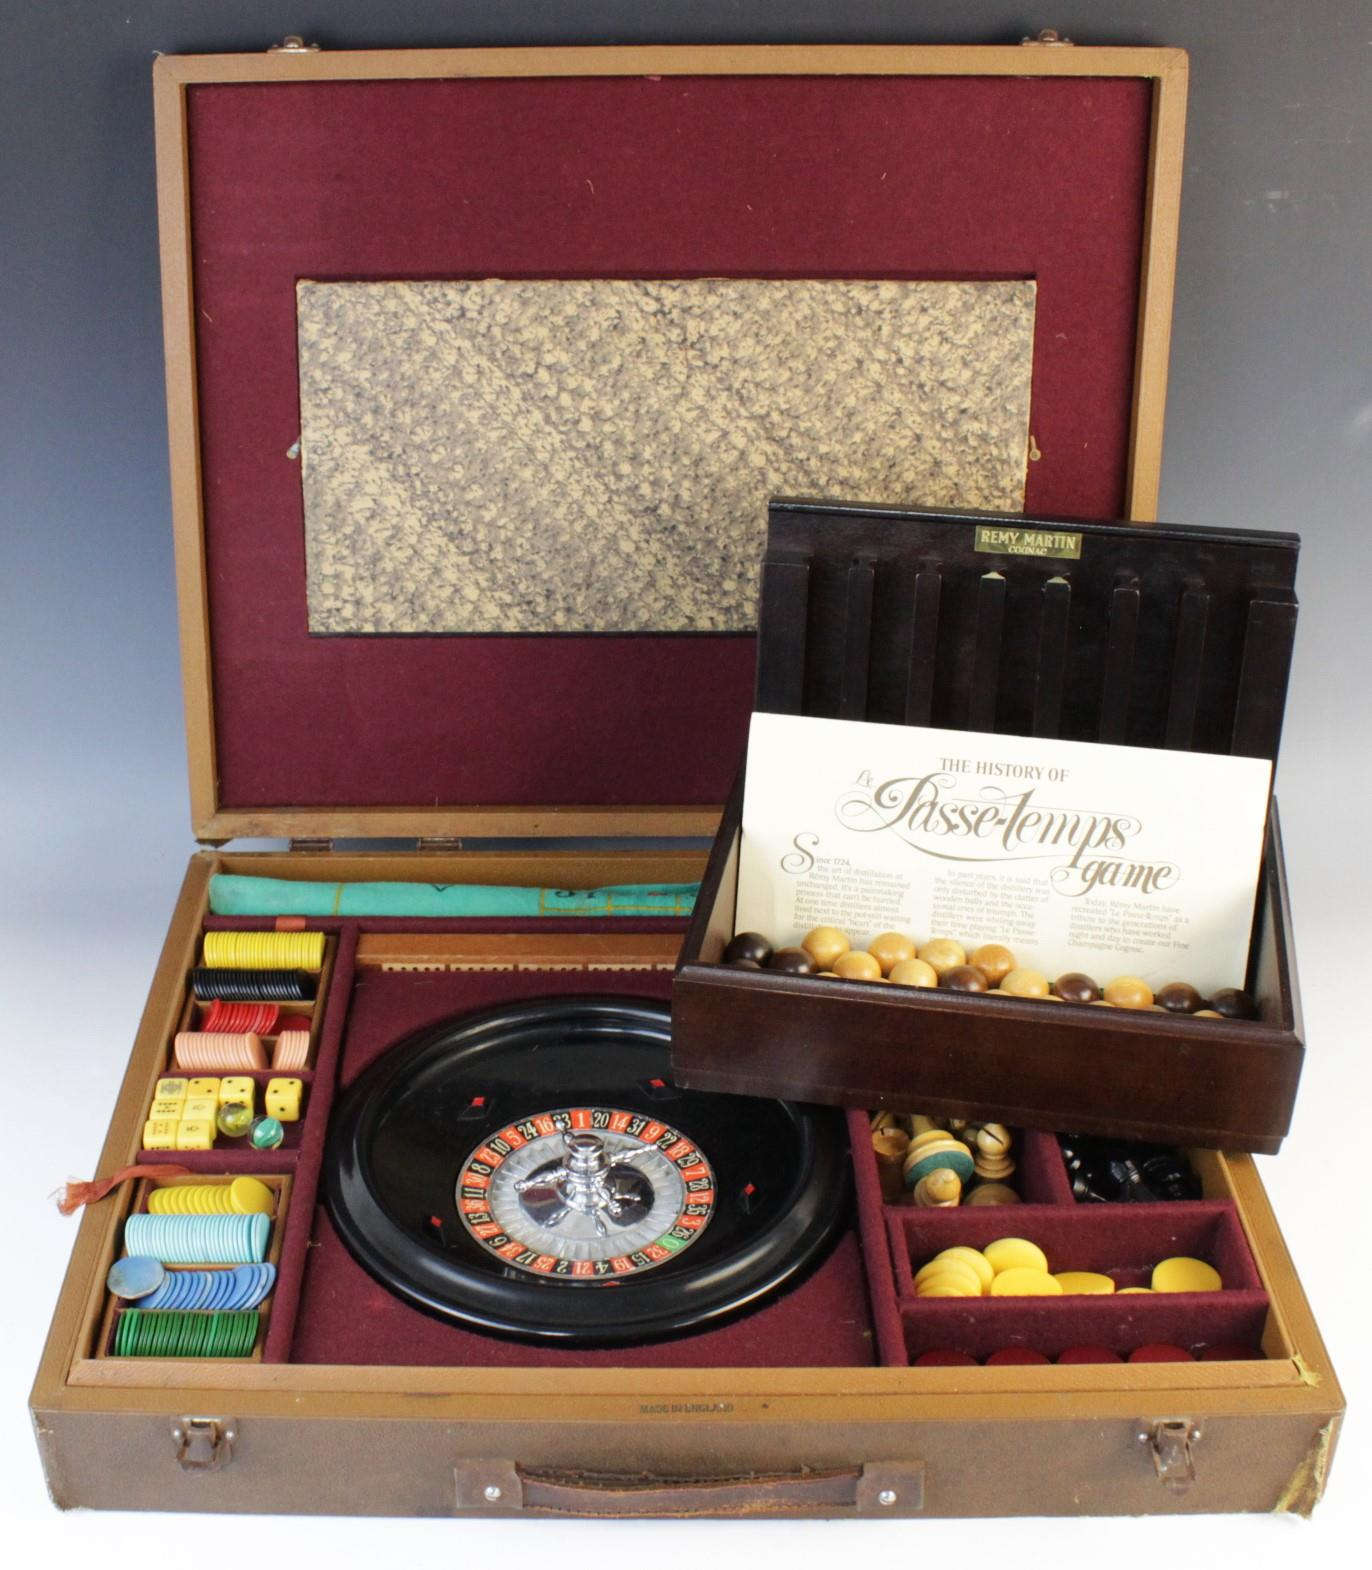 A 20th century cased gaming compendium, contained a Roulette wheel, counters and chess pieces,